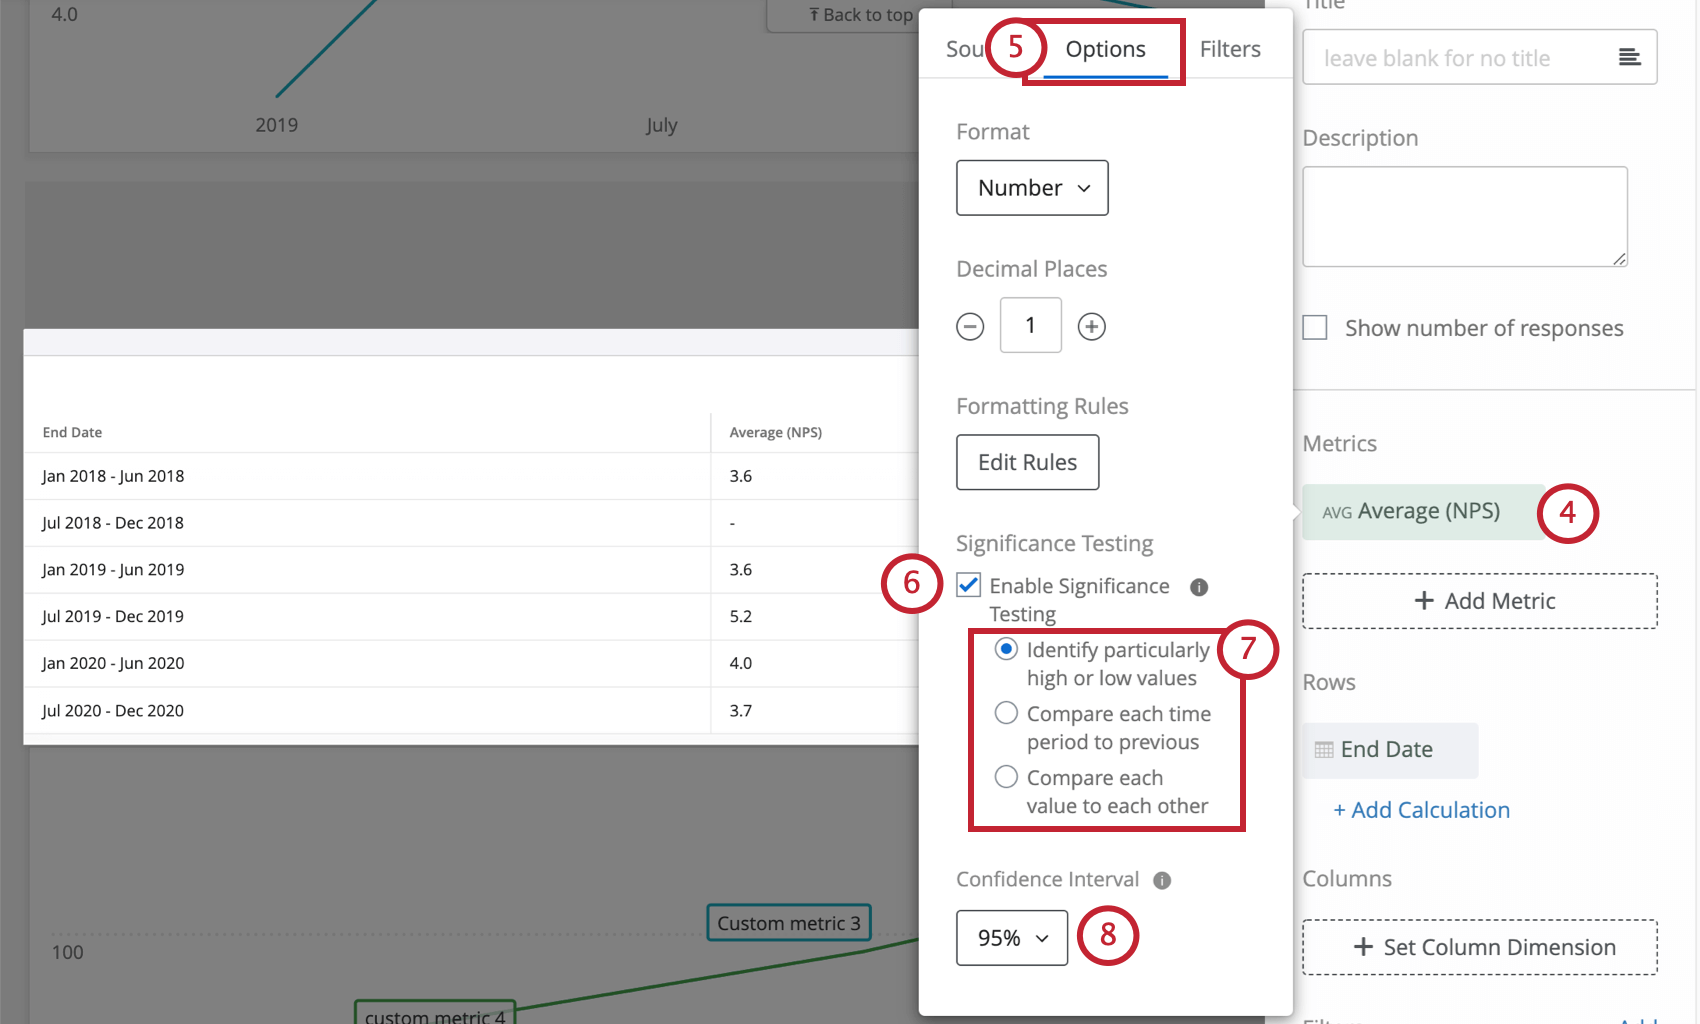 image of enabling significance testing in the options menu of a simple table widget's metric